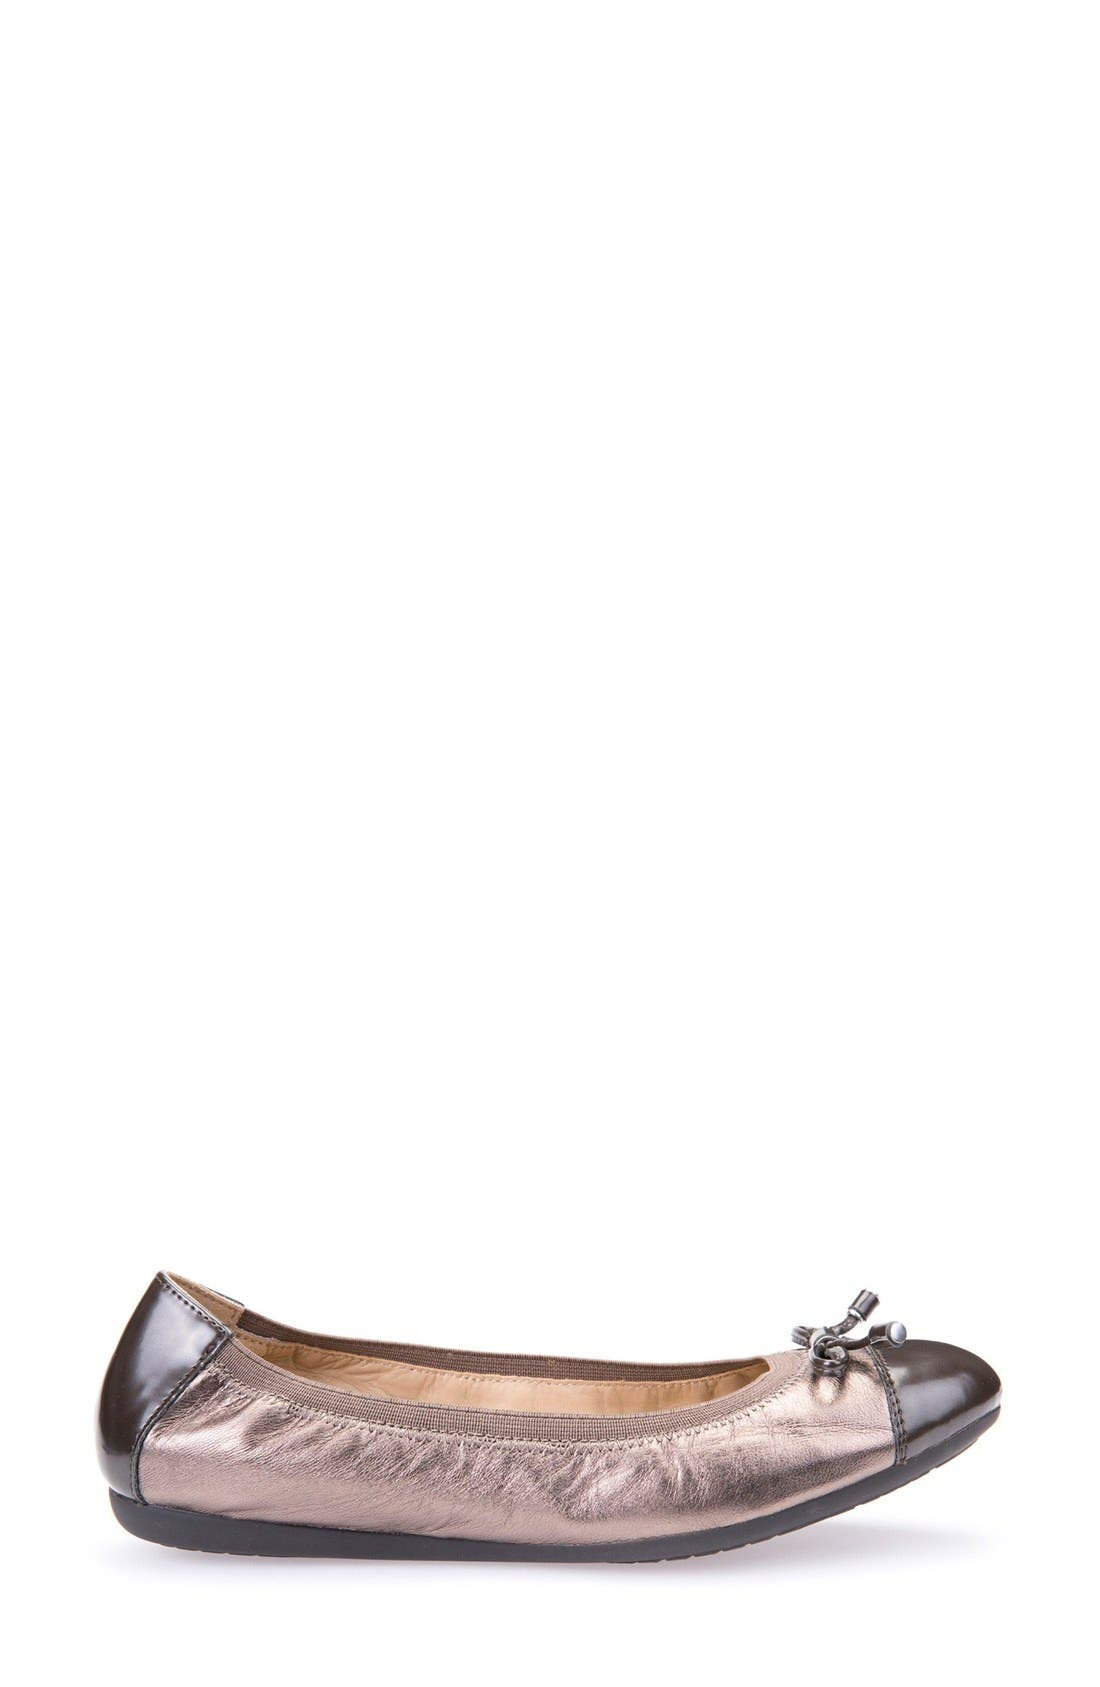 Alternate Image 3  - Geox Lola Fit Cap Toe Ballet Flat (Women)